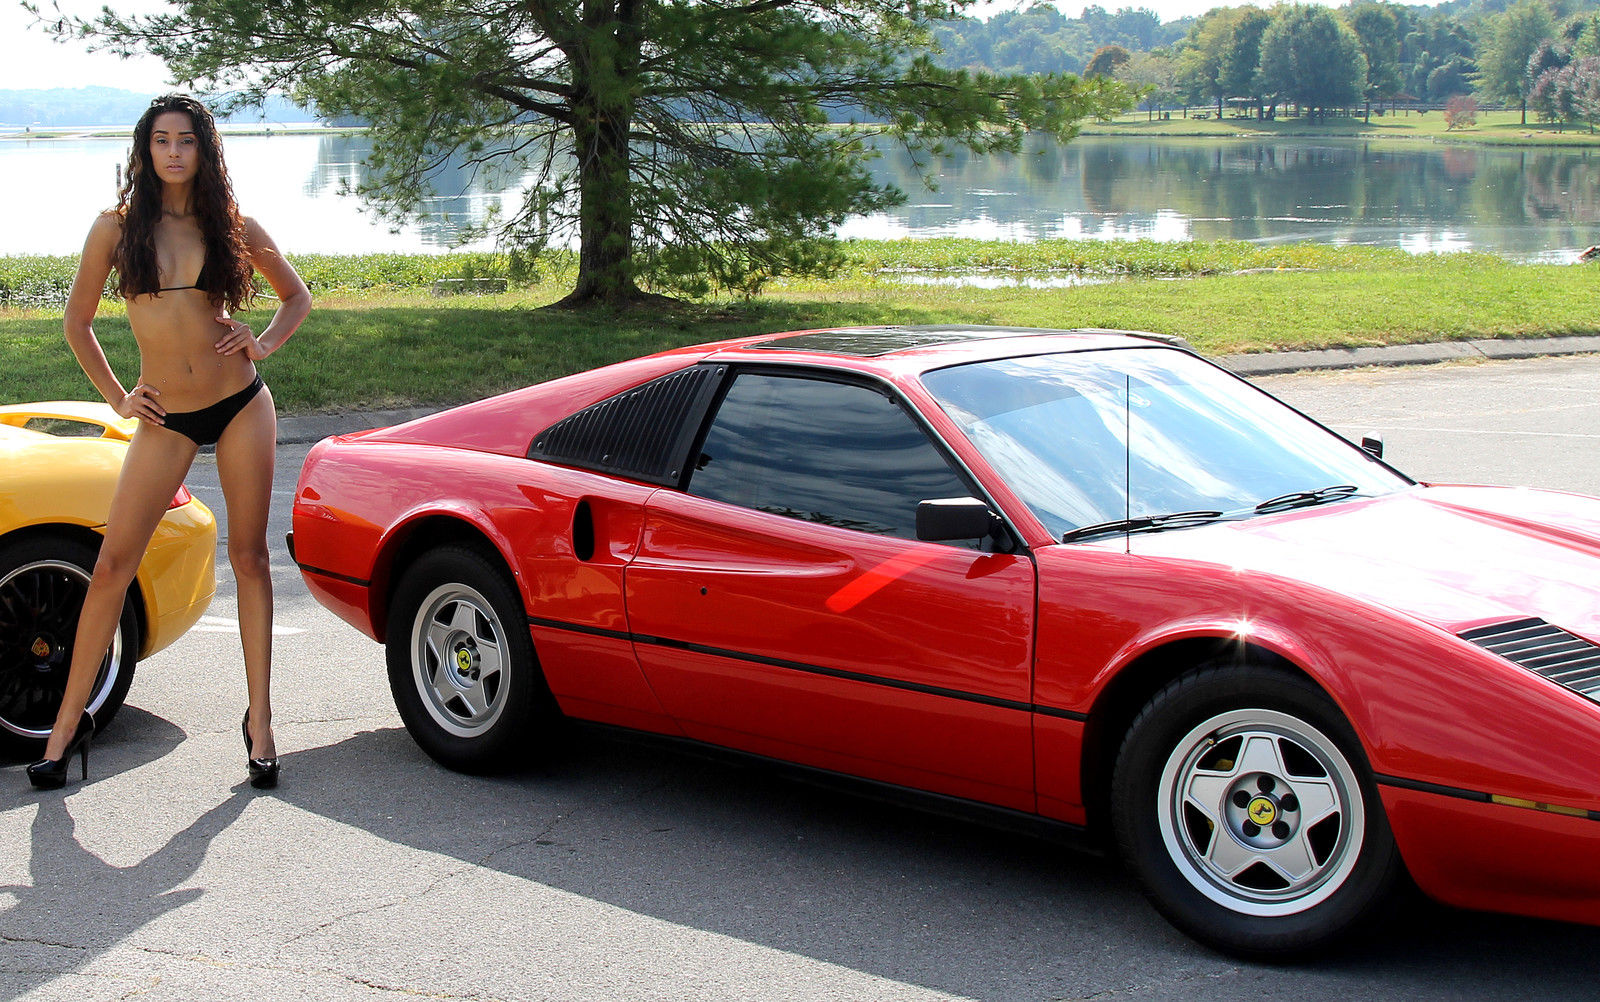 ferrari 308 gtb replica for sale in nashville tennessee united. Cars Review. Best American Auto & Cars Review